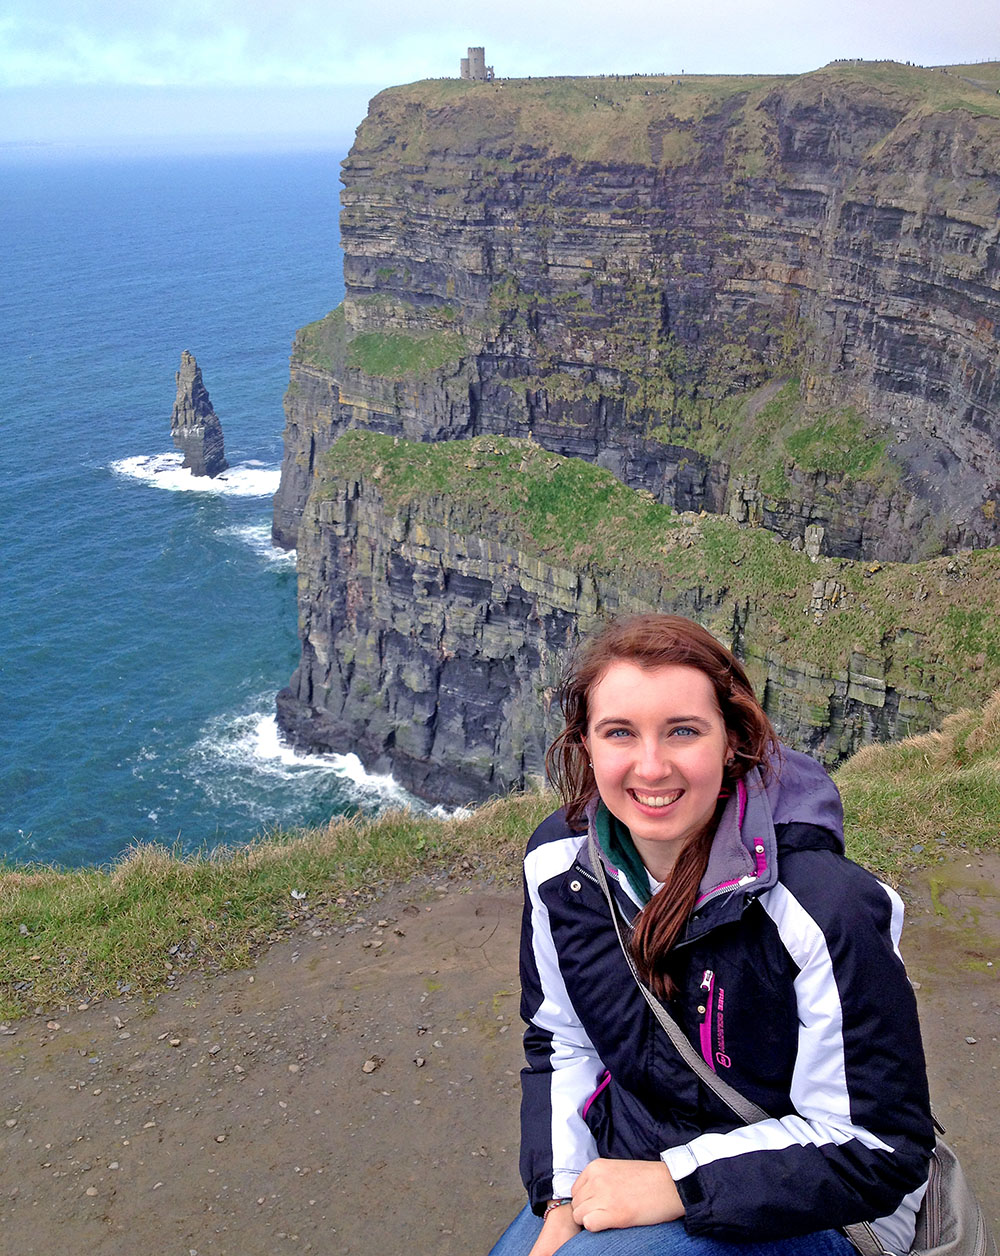 Jessica Albin at Cliffs of Moher in Ireland